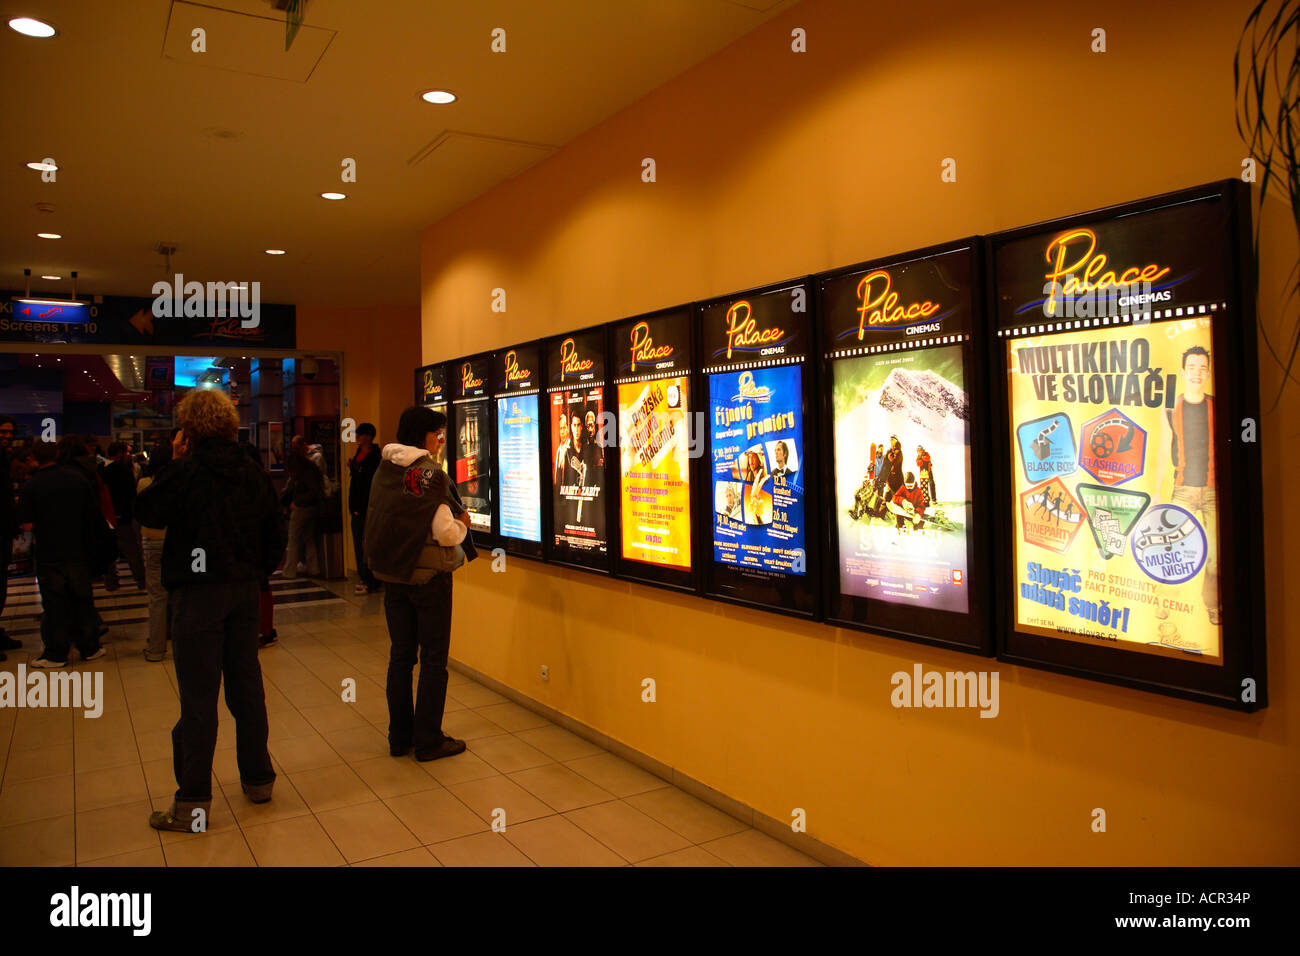 Czech Republic Prague nightlife cinema moviehouse Palace cinemas Prague 2006 - Stock Image